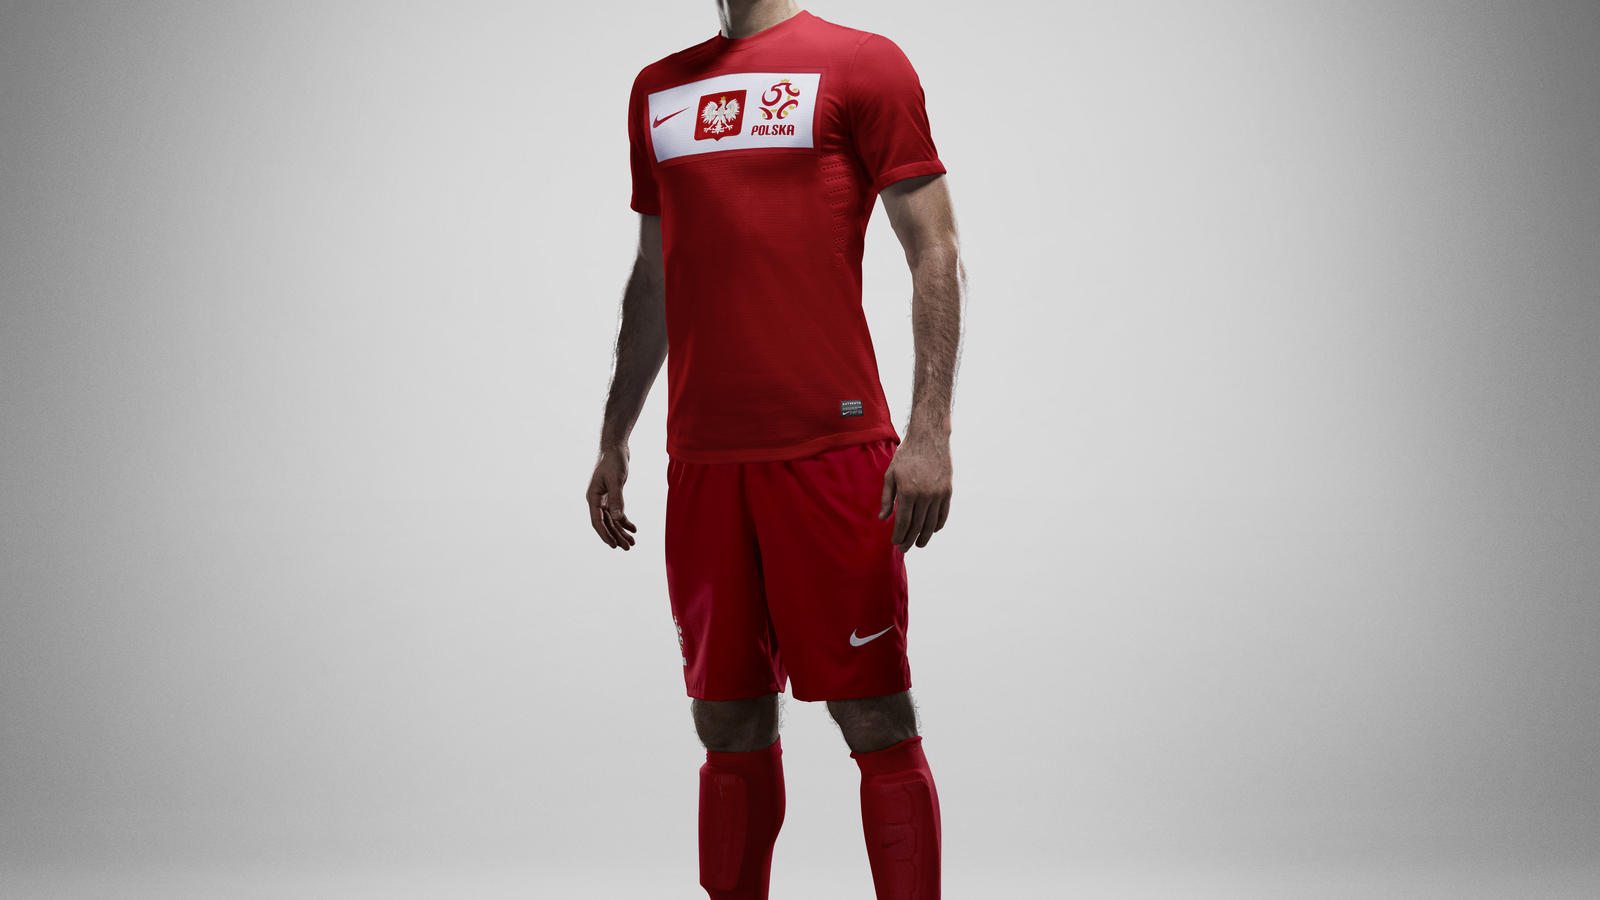 the best attitude df8b0 401e6 New Poland National Team Kit celebrates return of the eagle ...